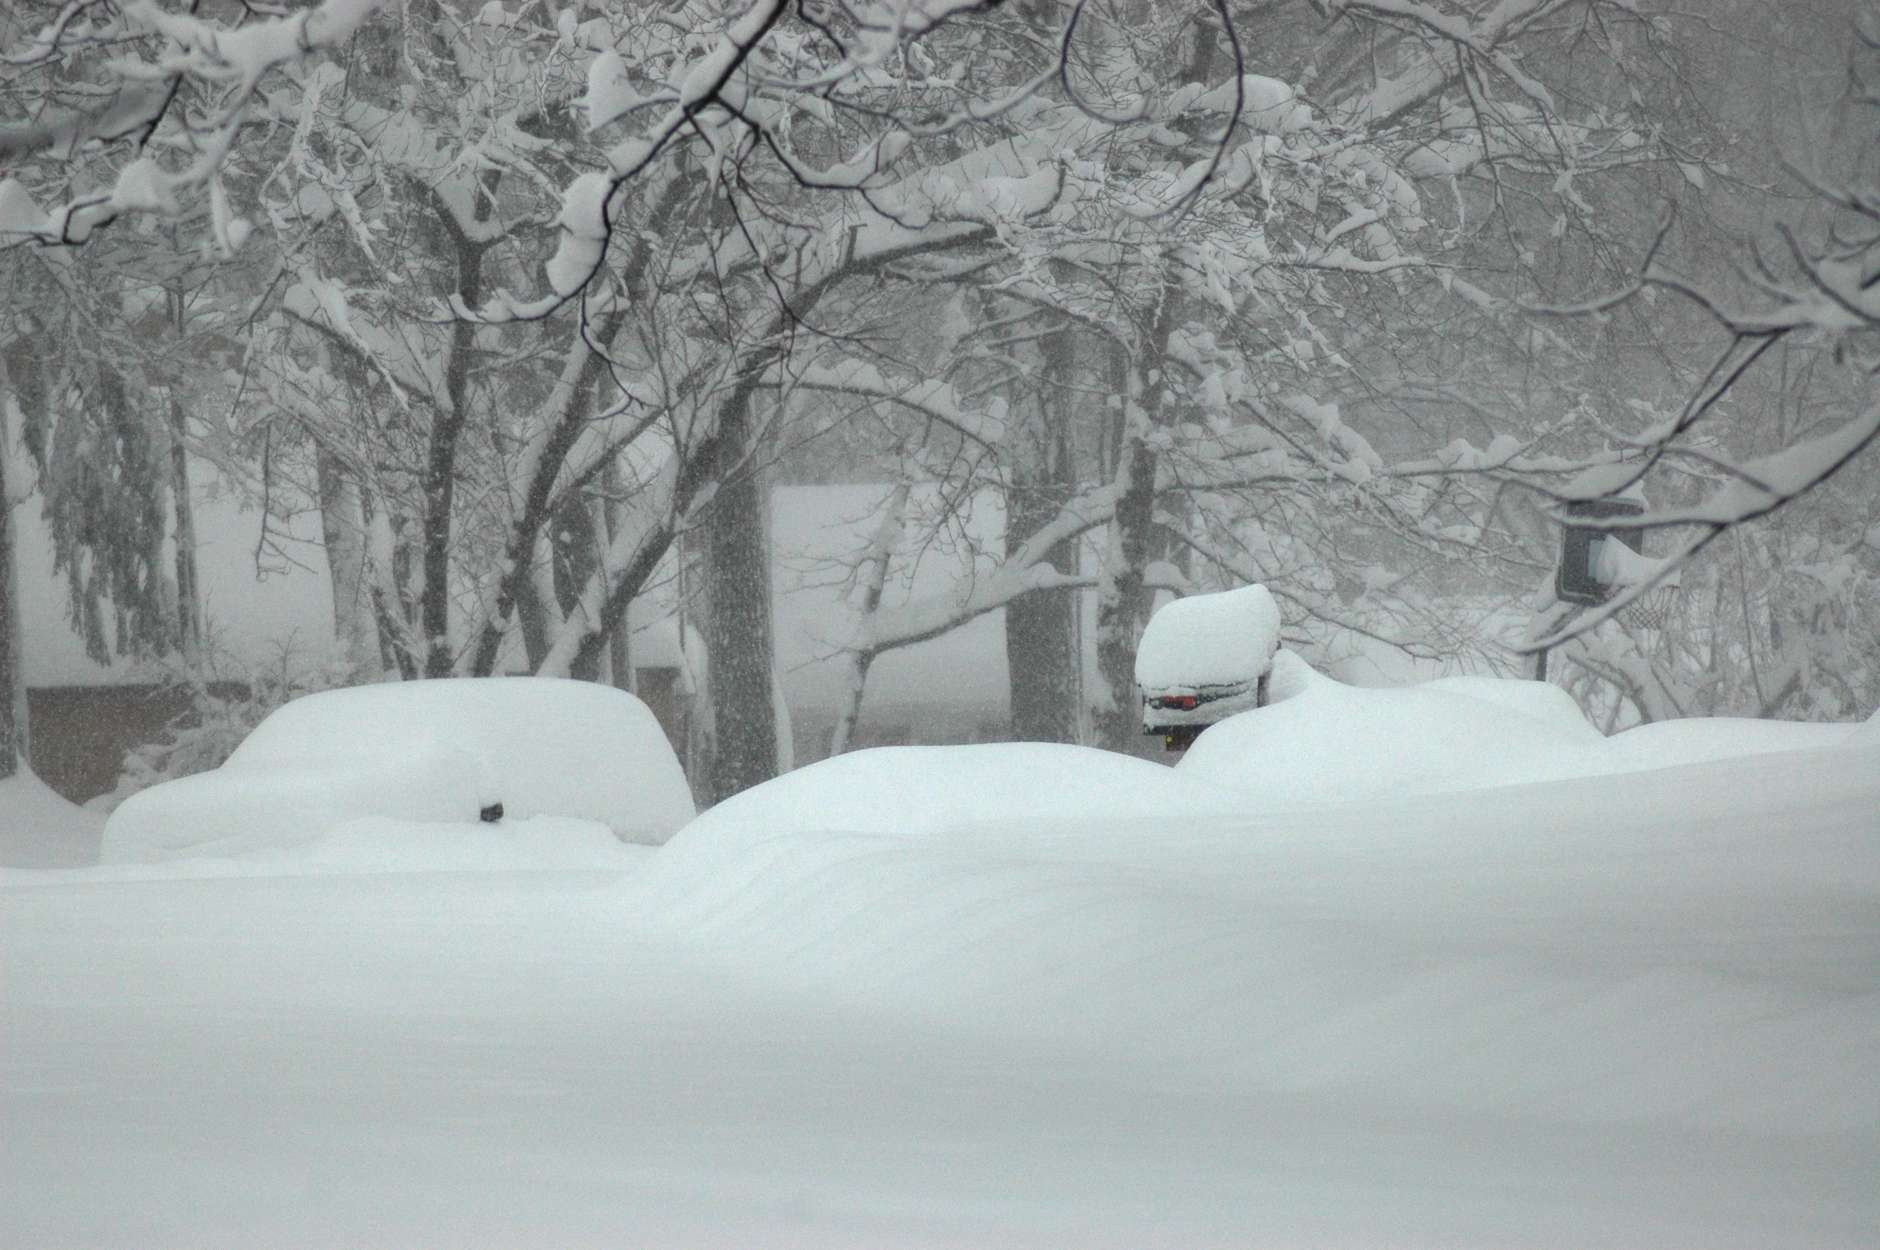 A cult-de-sac in northern Fairfax County is buried under more than two feet of snow during the big February 2010 storm. (WTOP/Dave Dildine)